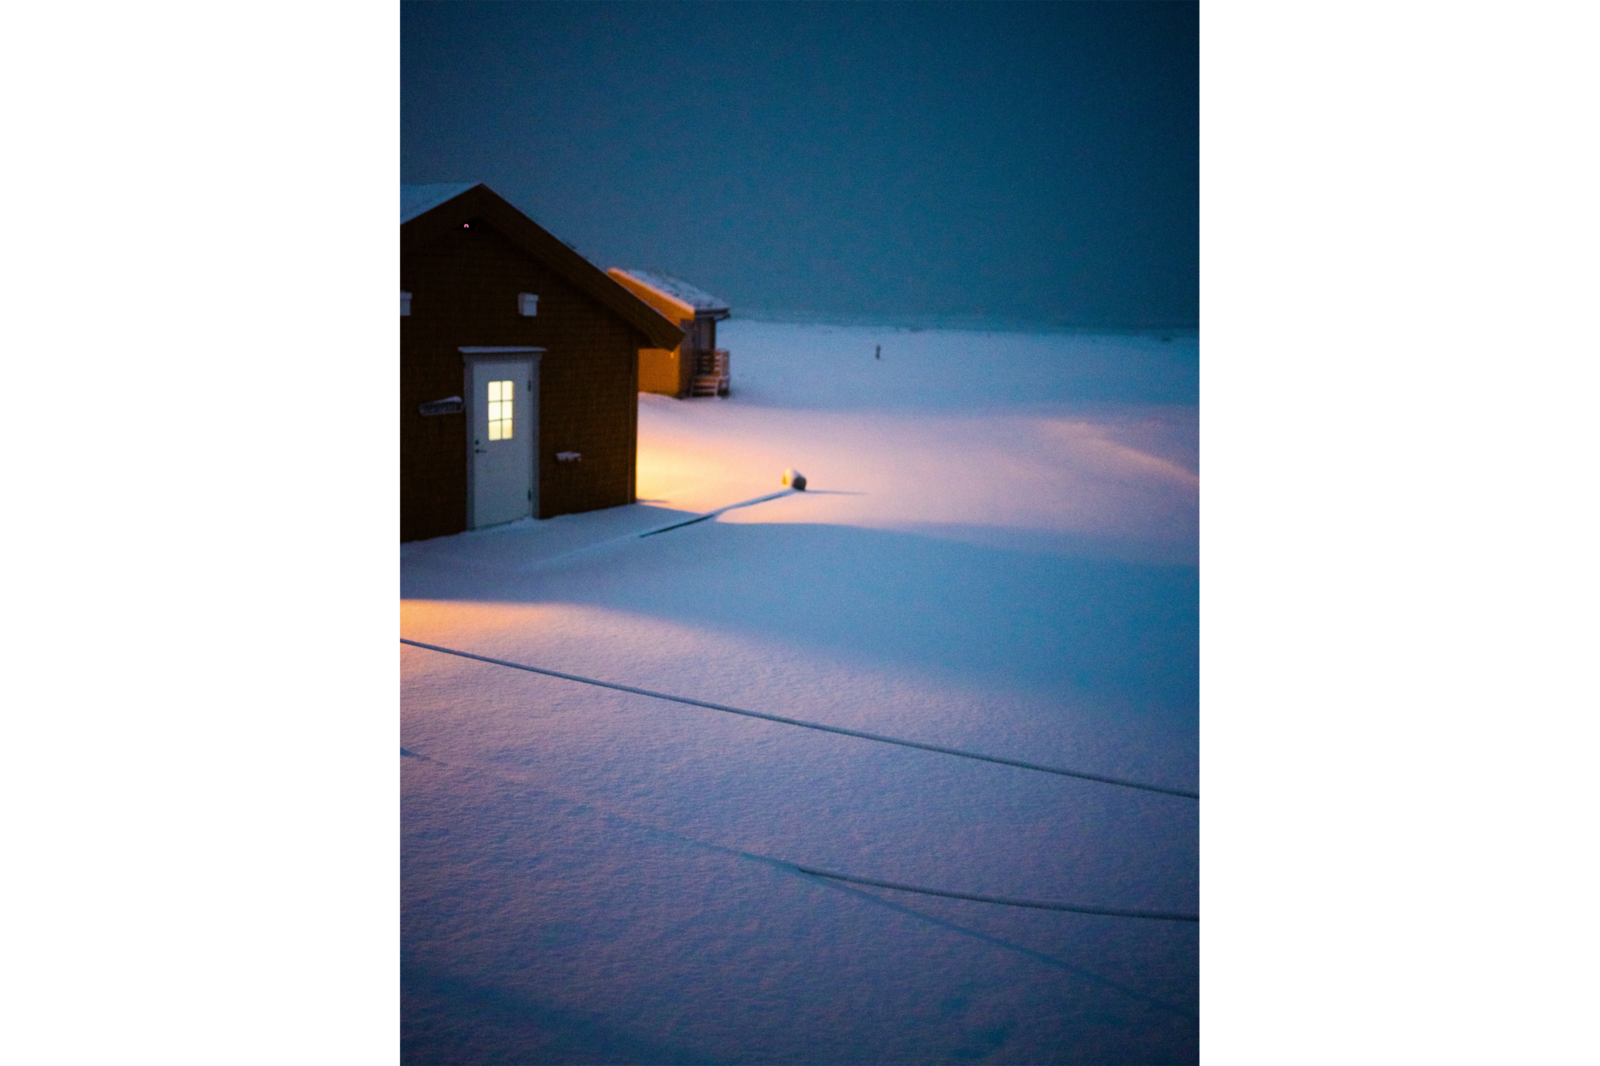 house in snowy field at night alpha 7RIV